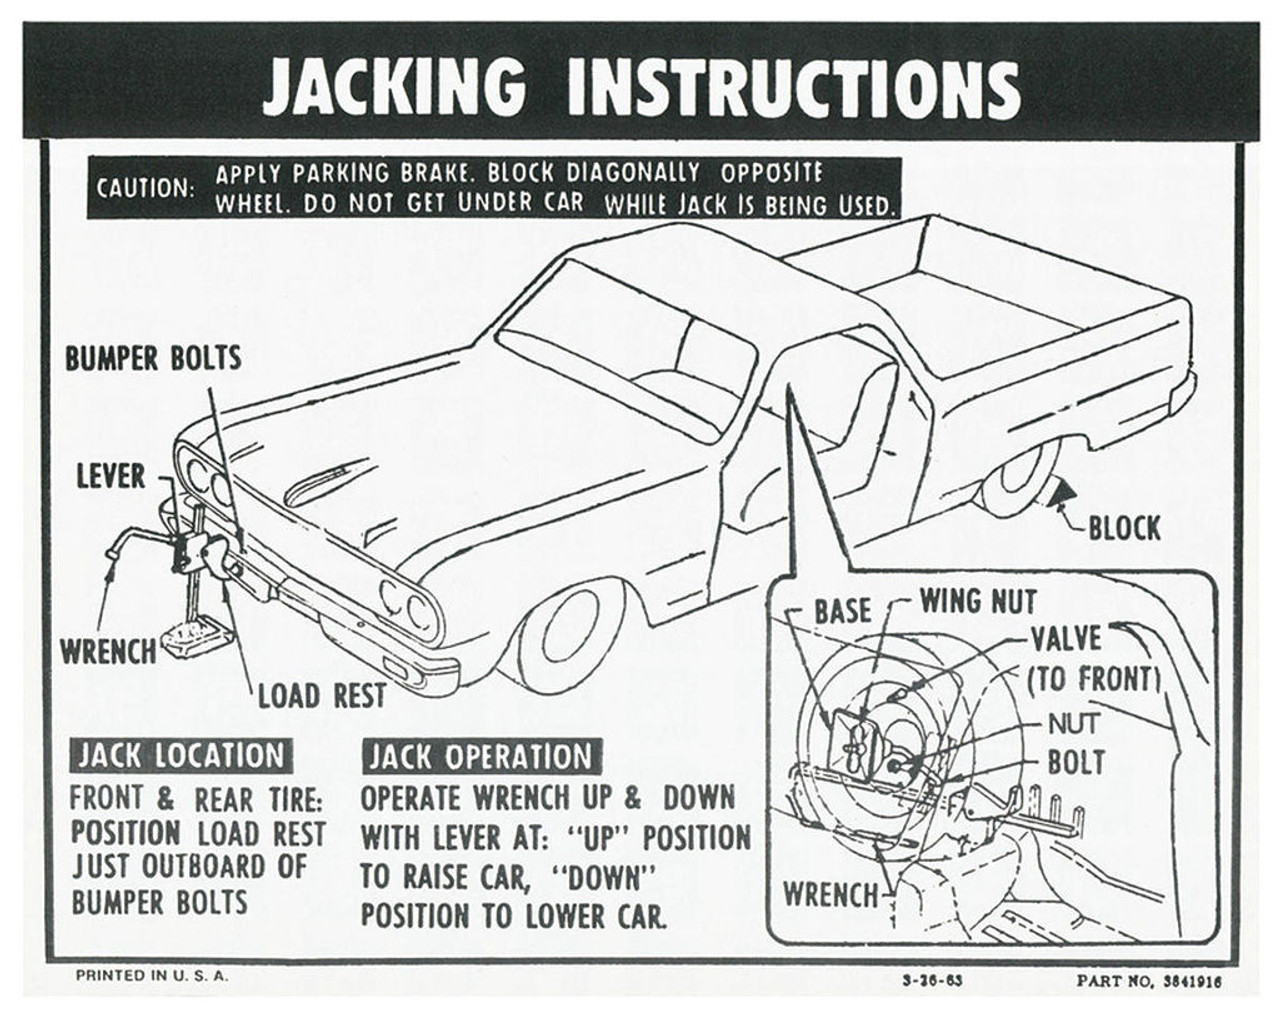 64 65 66 Chevy El Camino Spare Tire Jacking Instructions Decal 1964 Wiring Diagram 1965 1966